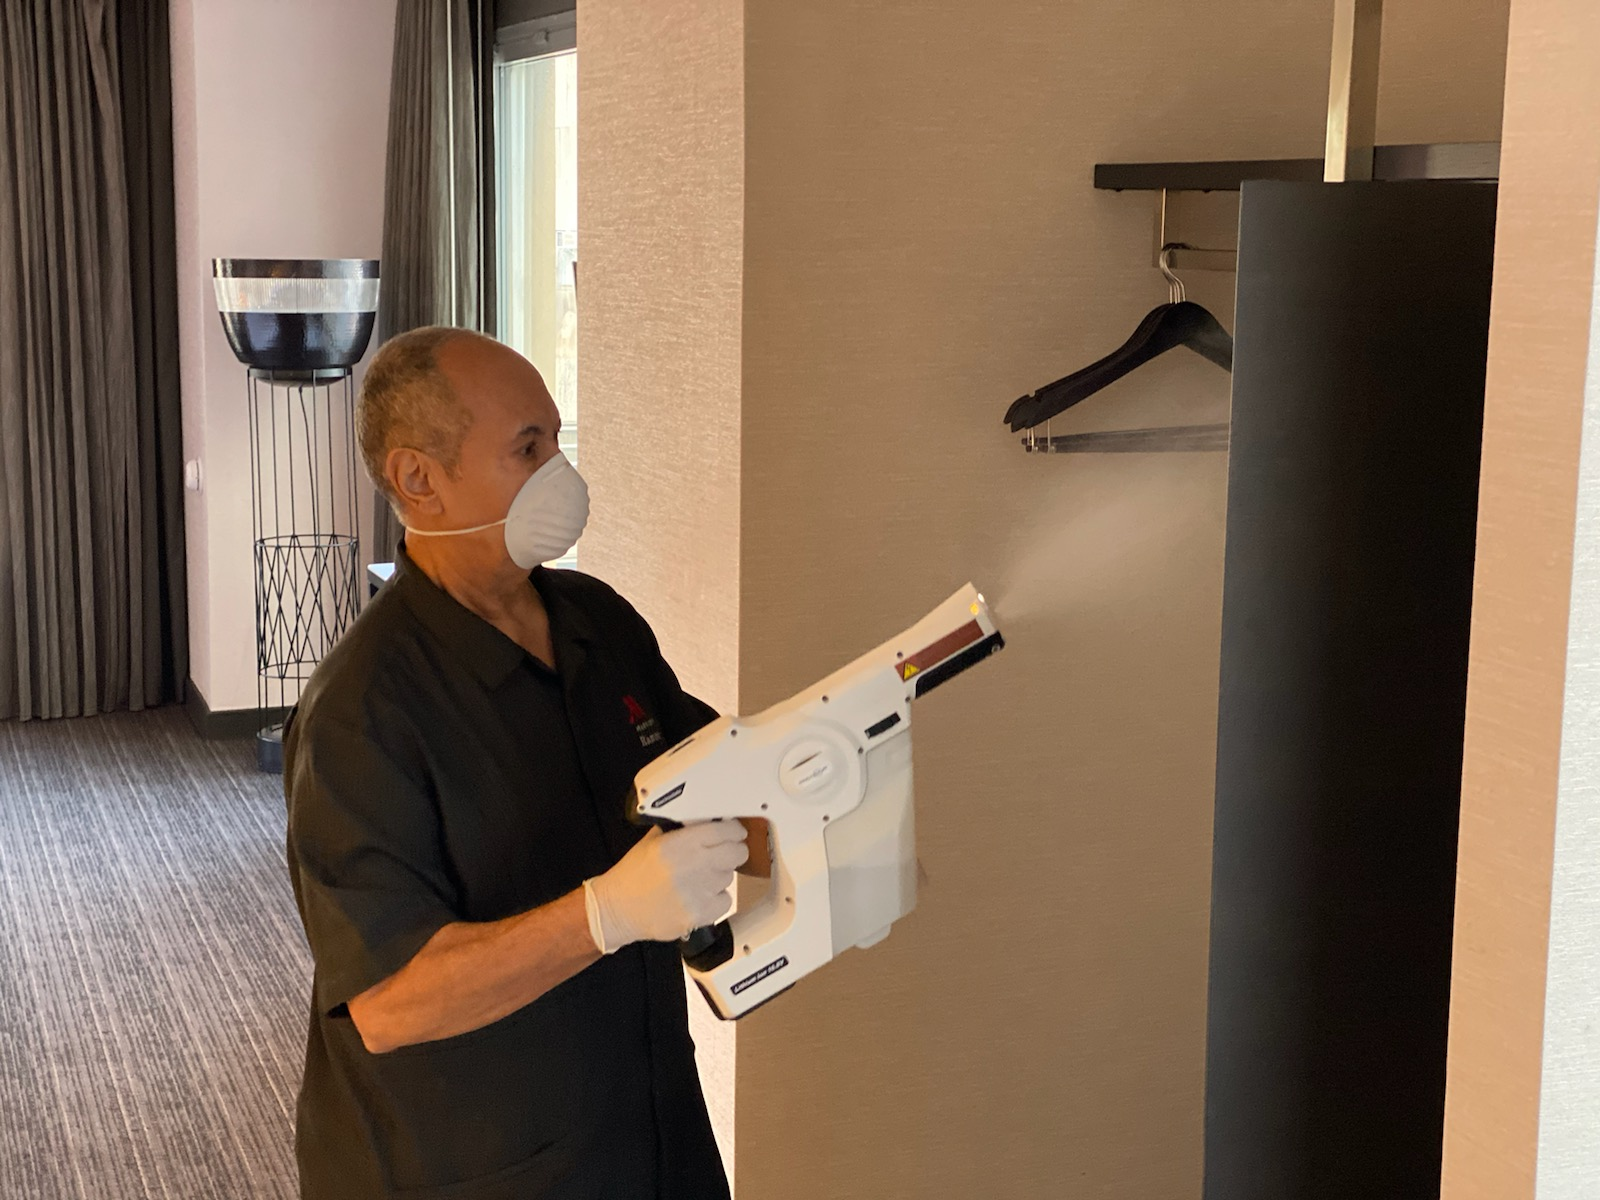 Marriott Global Cleanliness Council - Need for hygiene certification in hotels - HoCoSo CONNECT